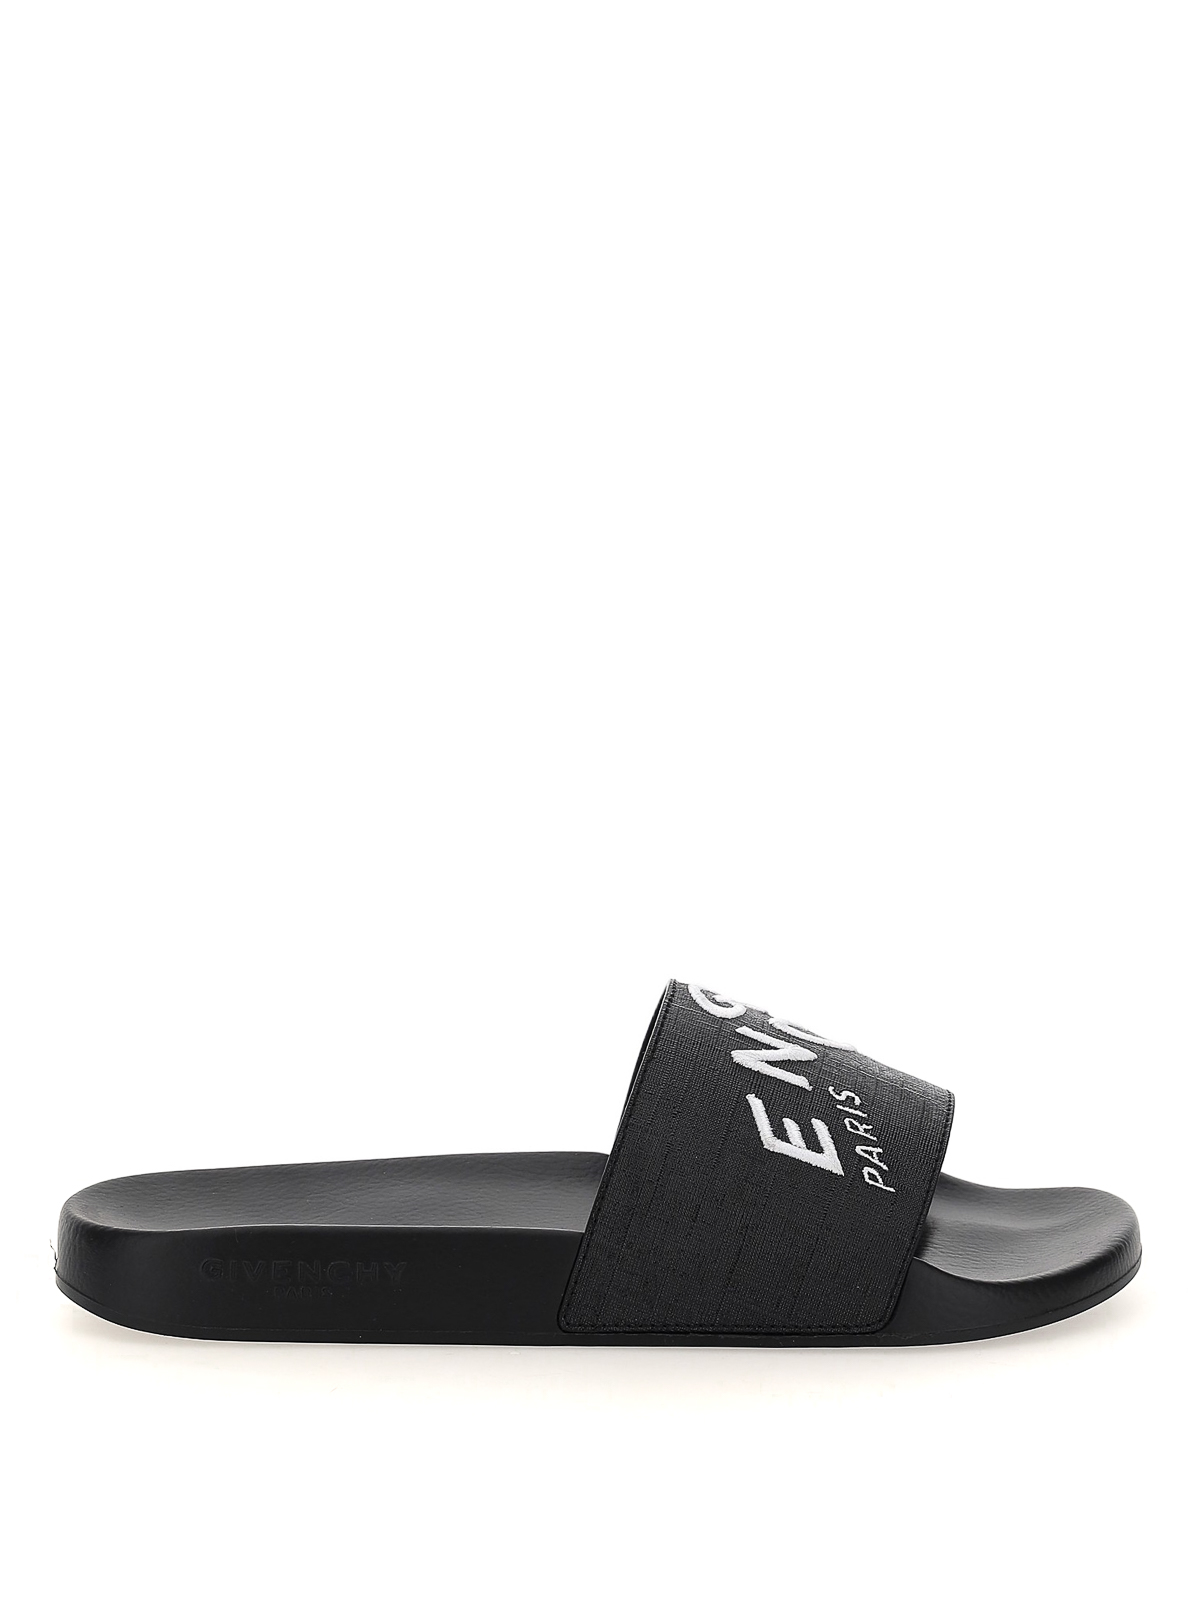 Givenchy REFRACTED LOGO SLIDERS